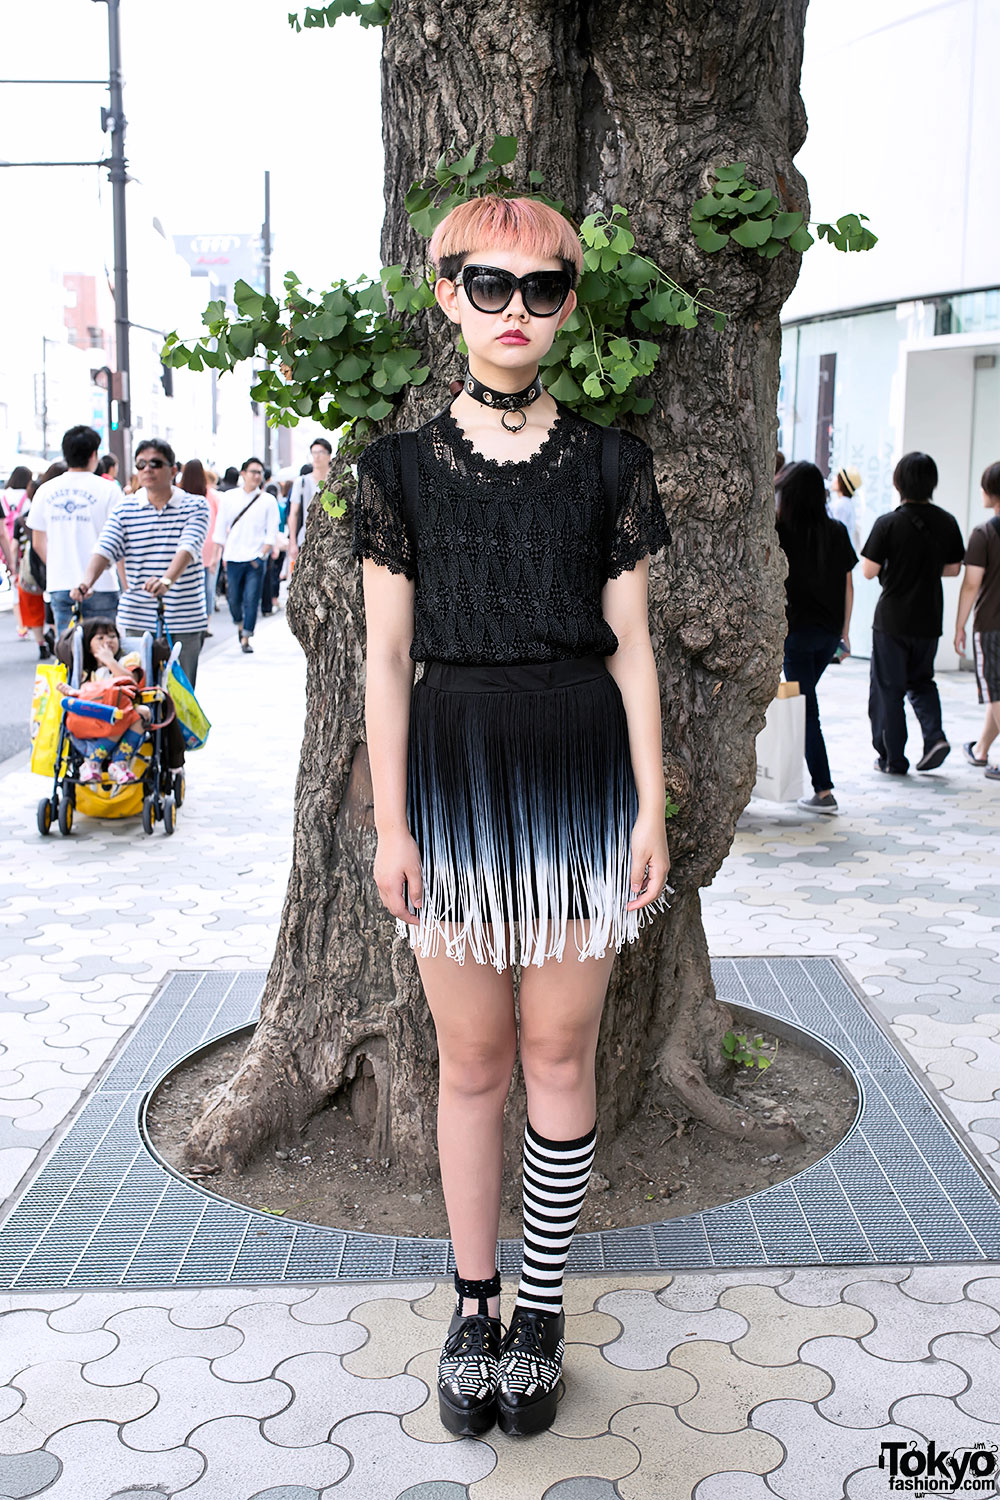 Chic Shaved Pink Hairstyle, Choker, Lace & Fringe In Harajuku